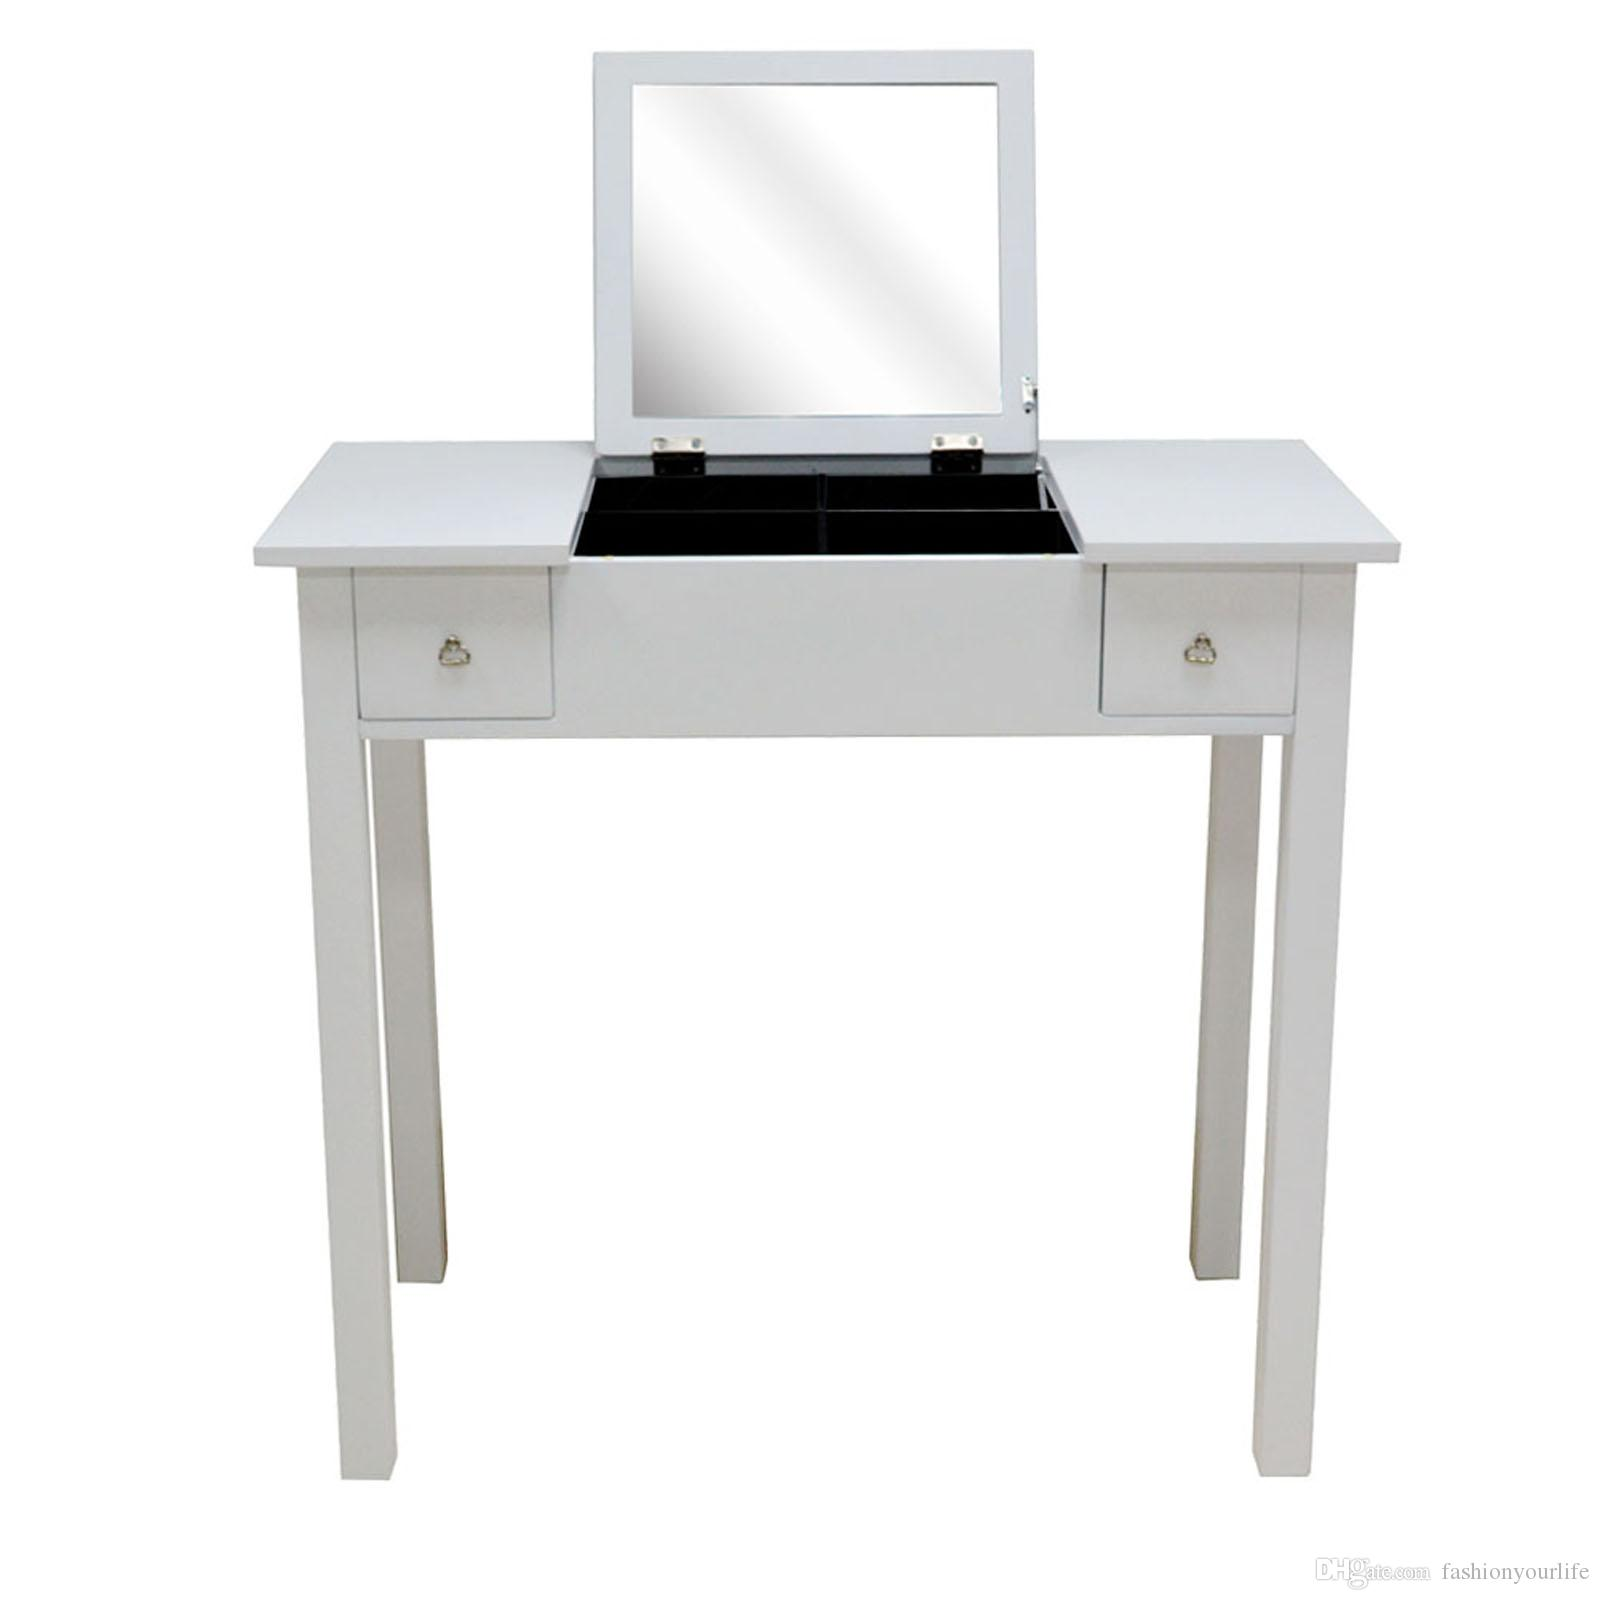 Bedroom Furniture Dressing Table With Mirror Vanity Makeup Table